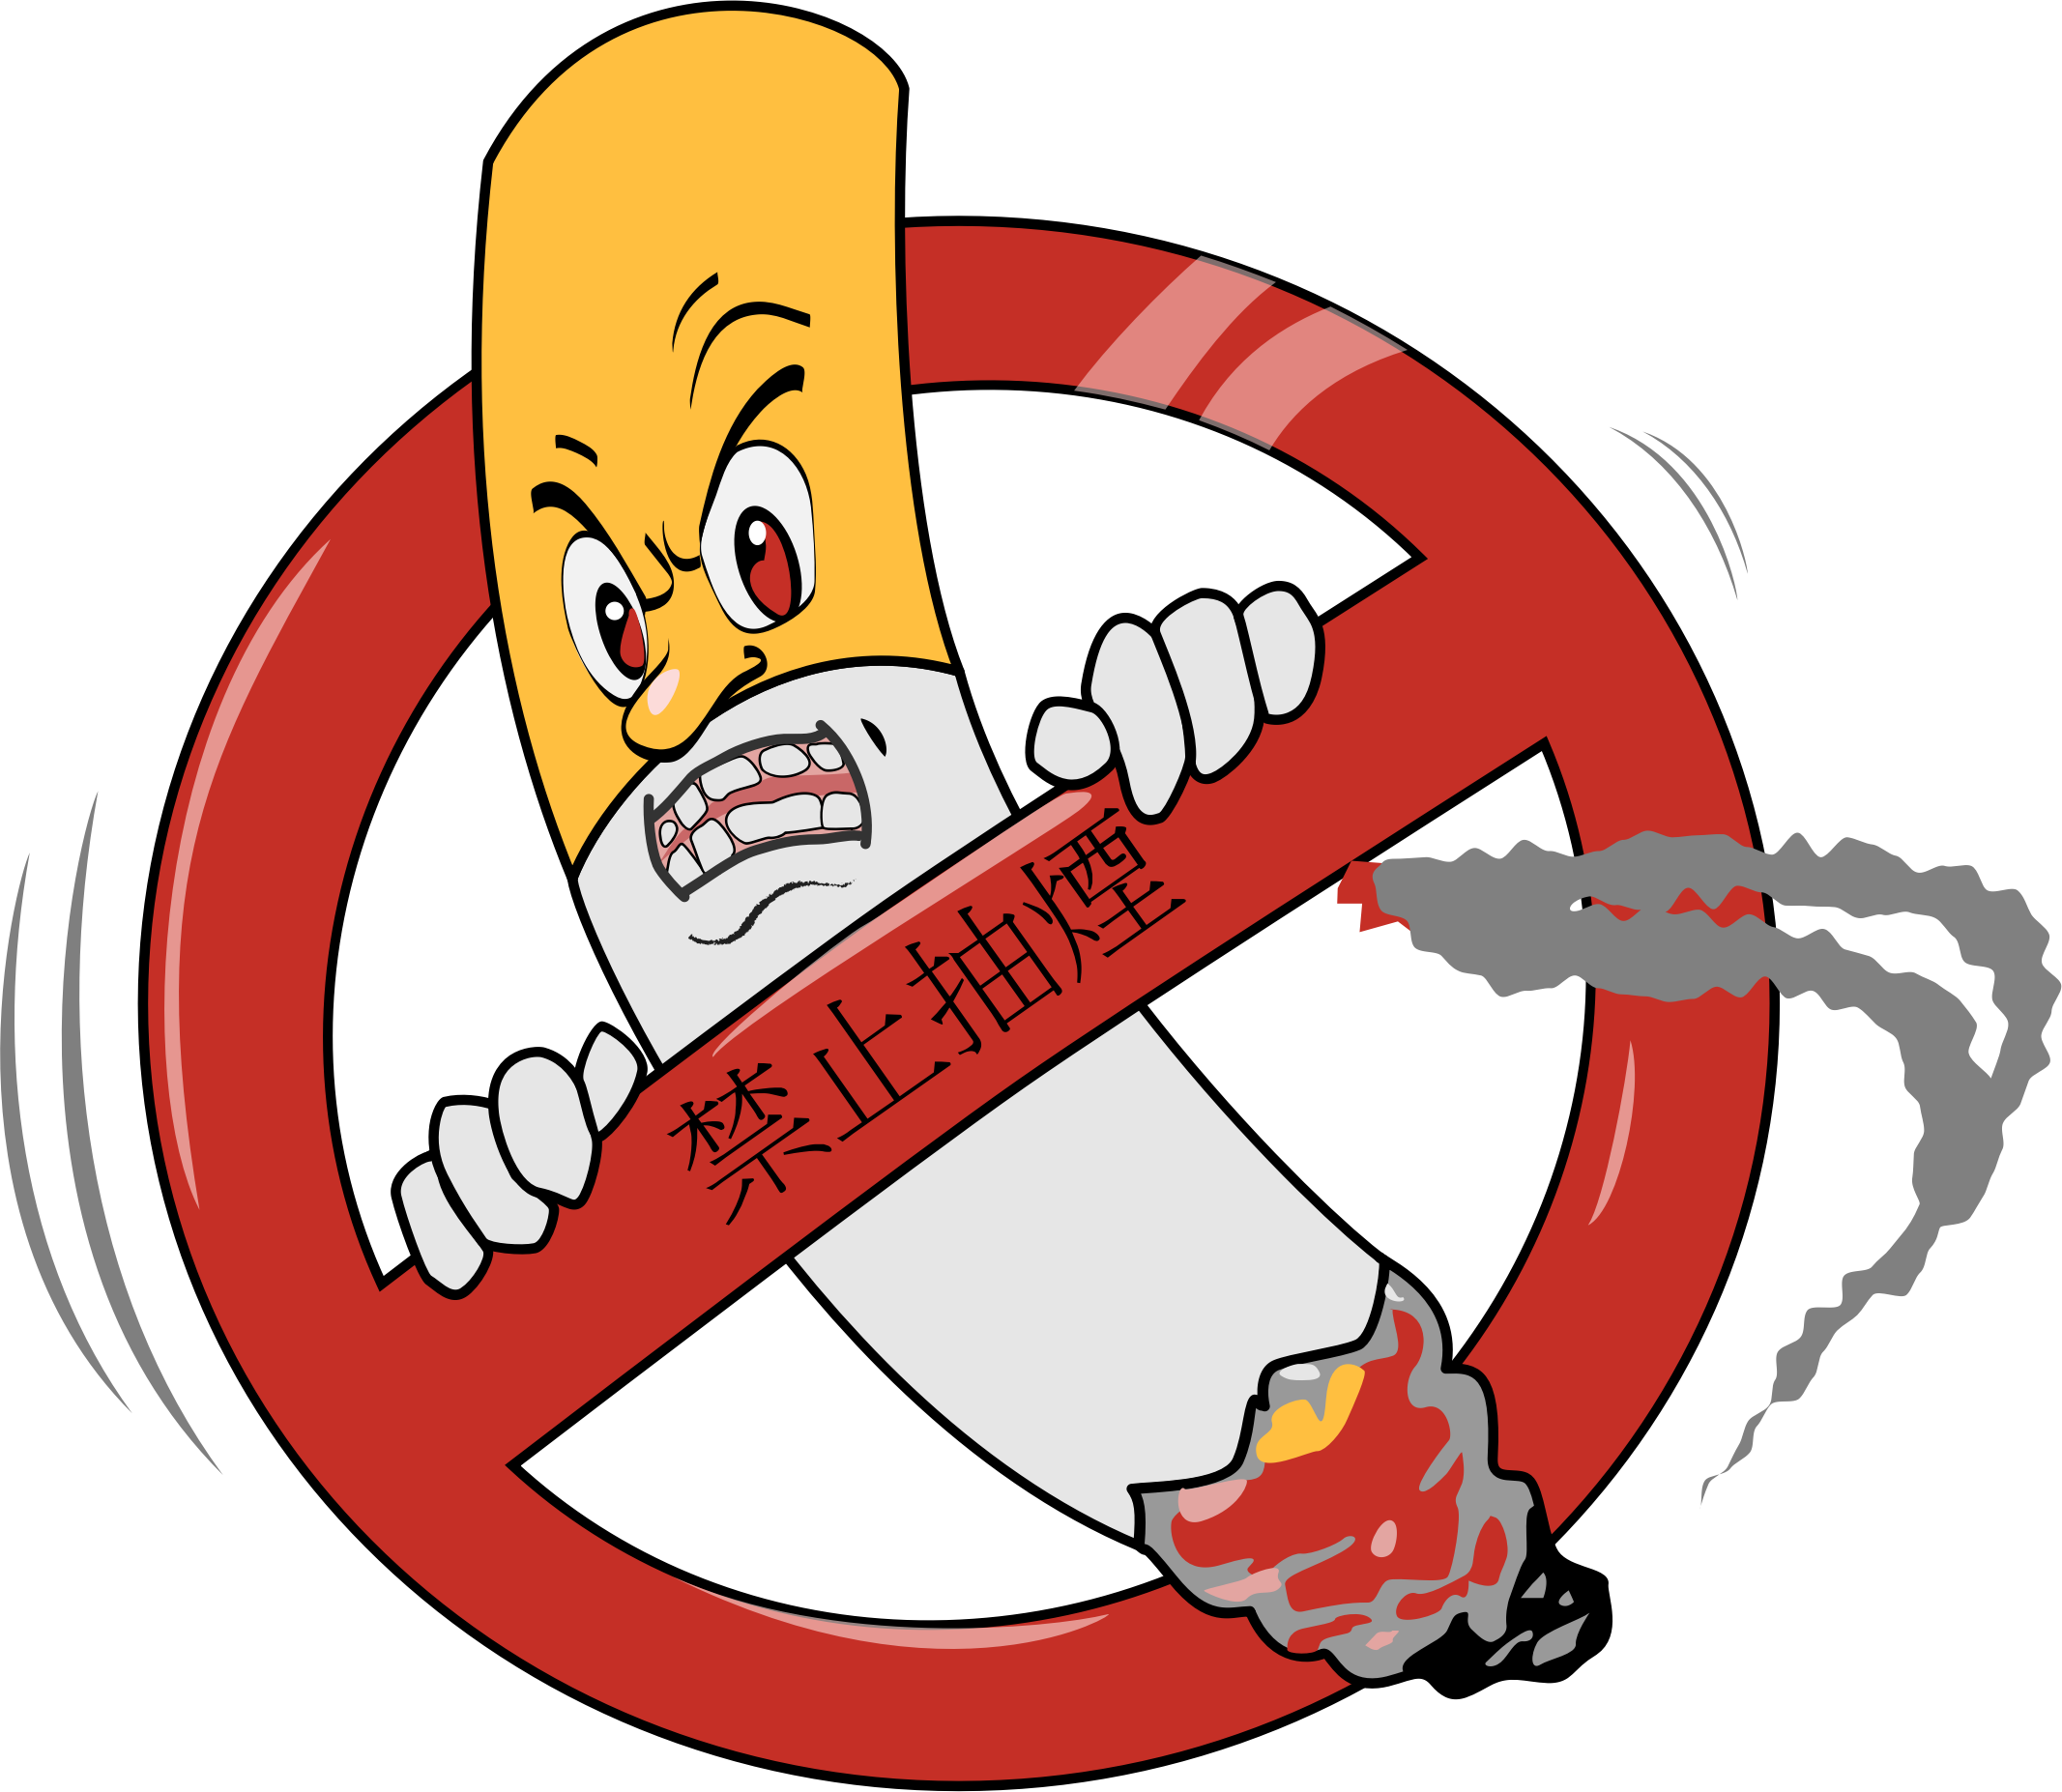 No Smoking clipart please Chinese Mascot Mascot No Smoking